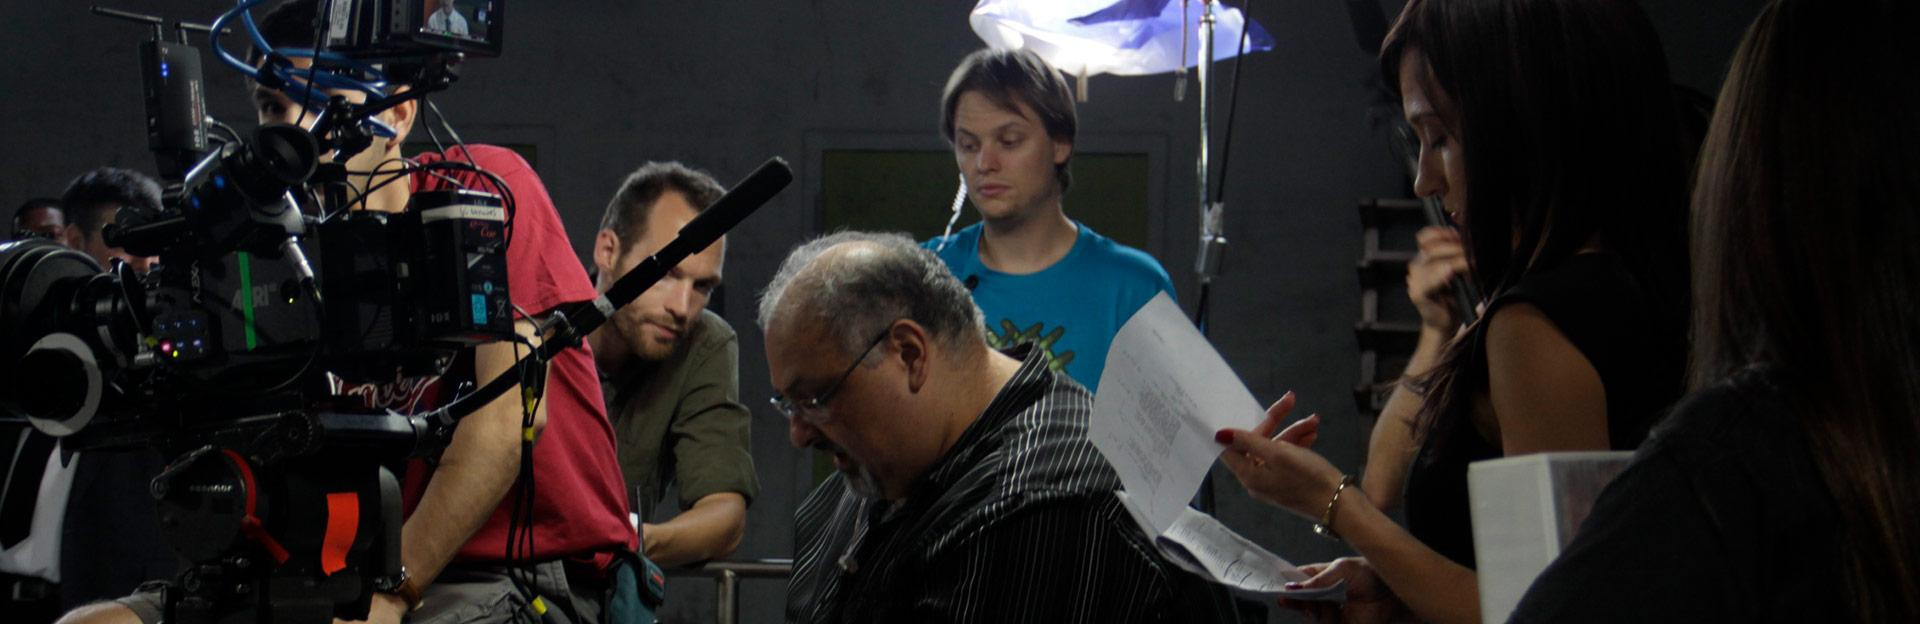 Film students and teachers behind camera